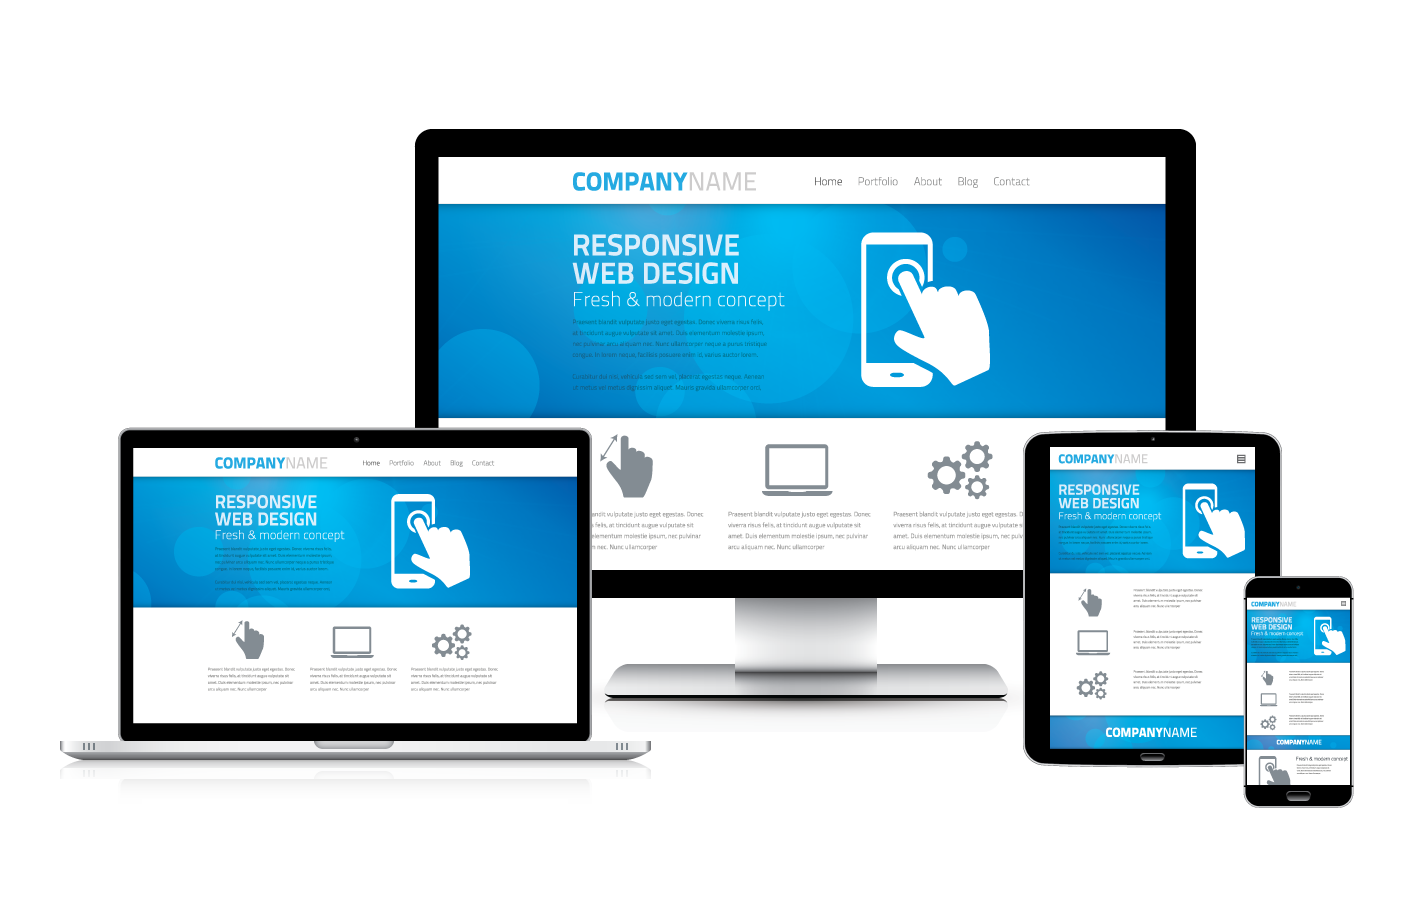 Why Should I Make My Website Mobile Friendly?